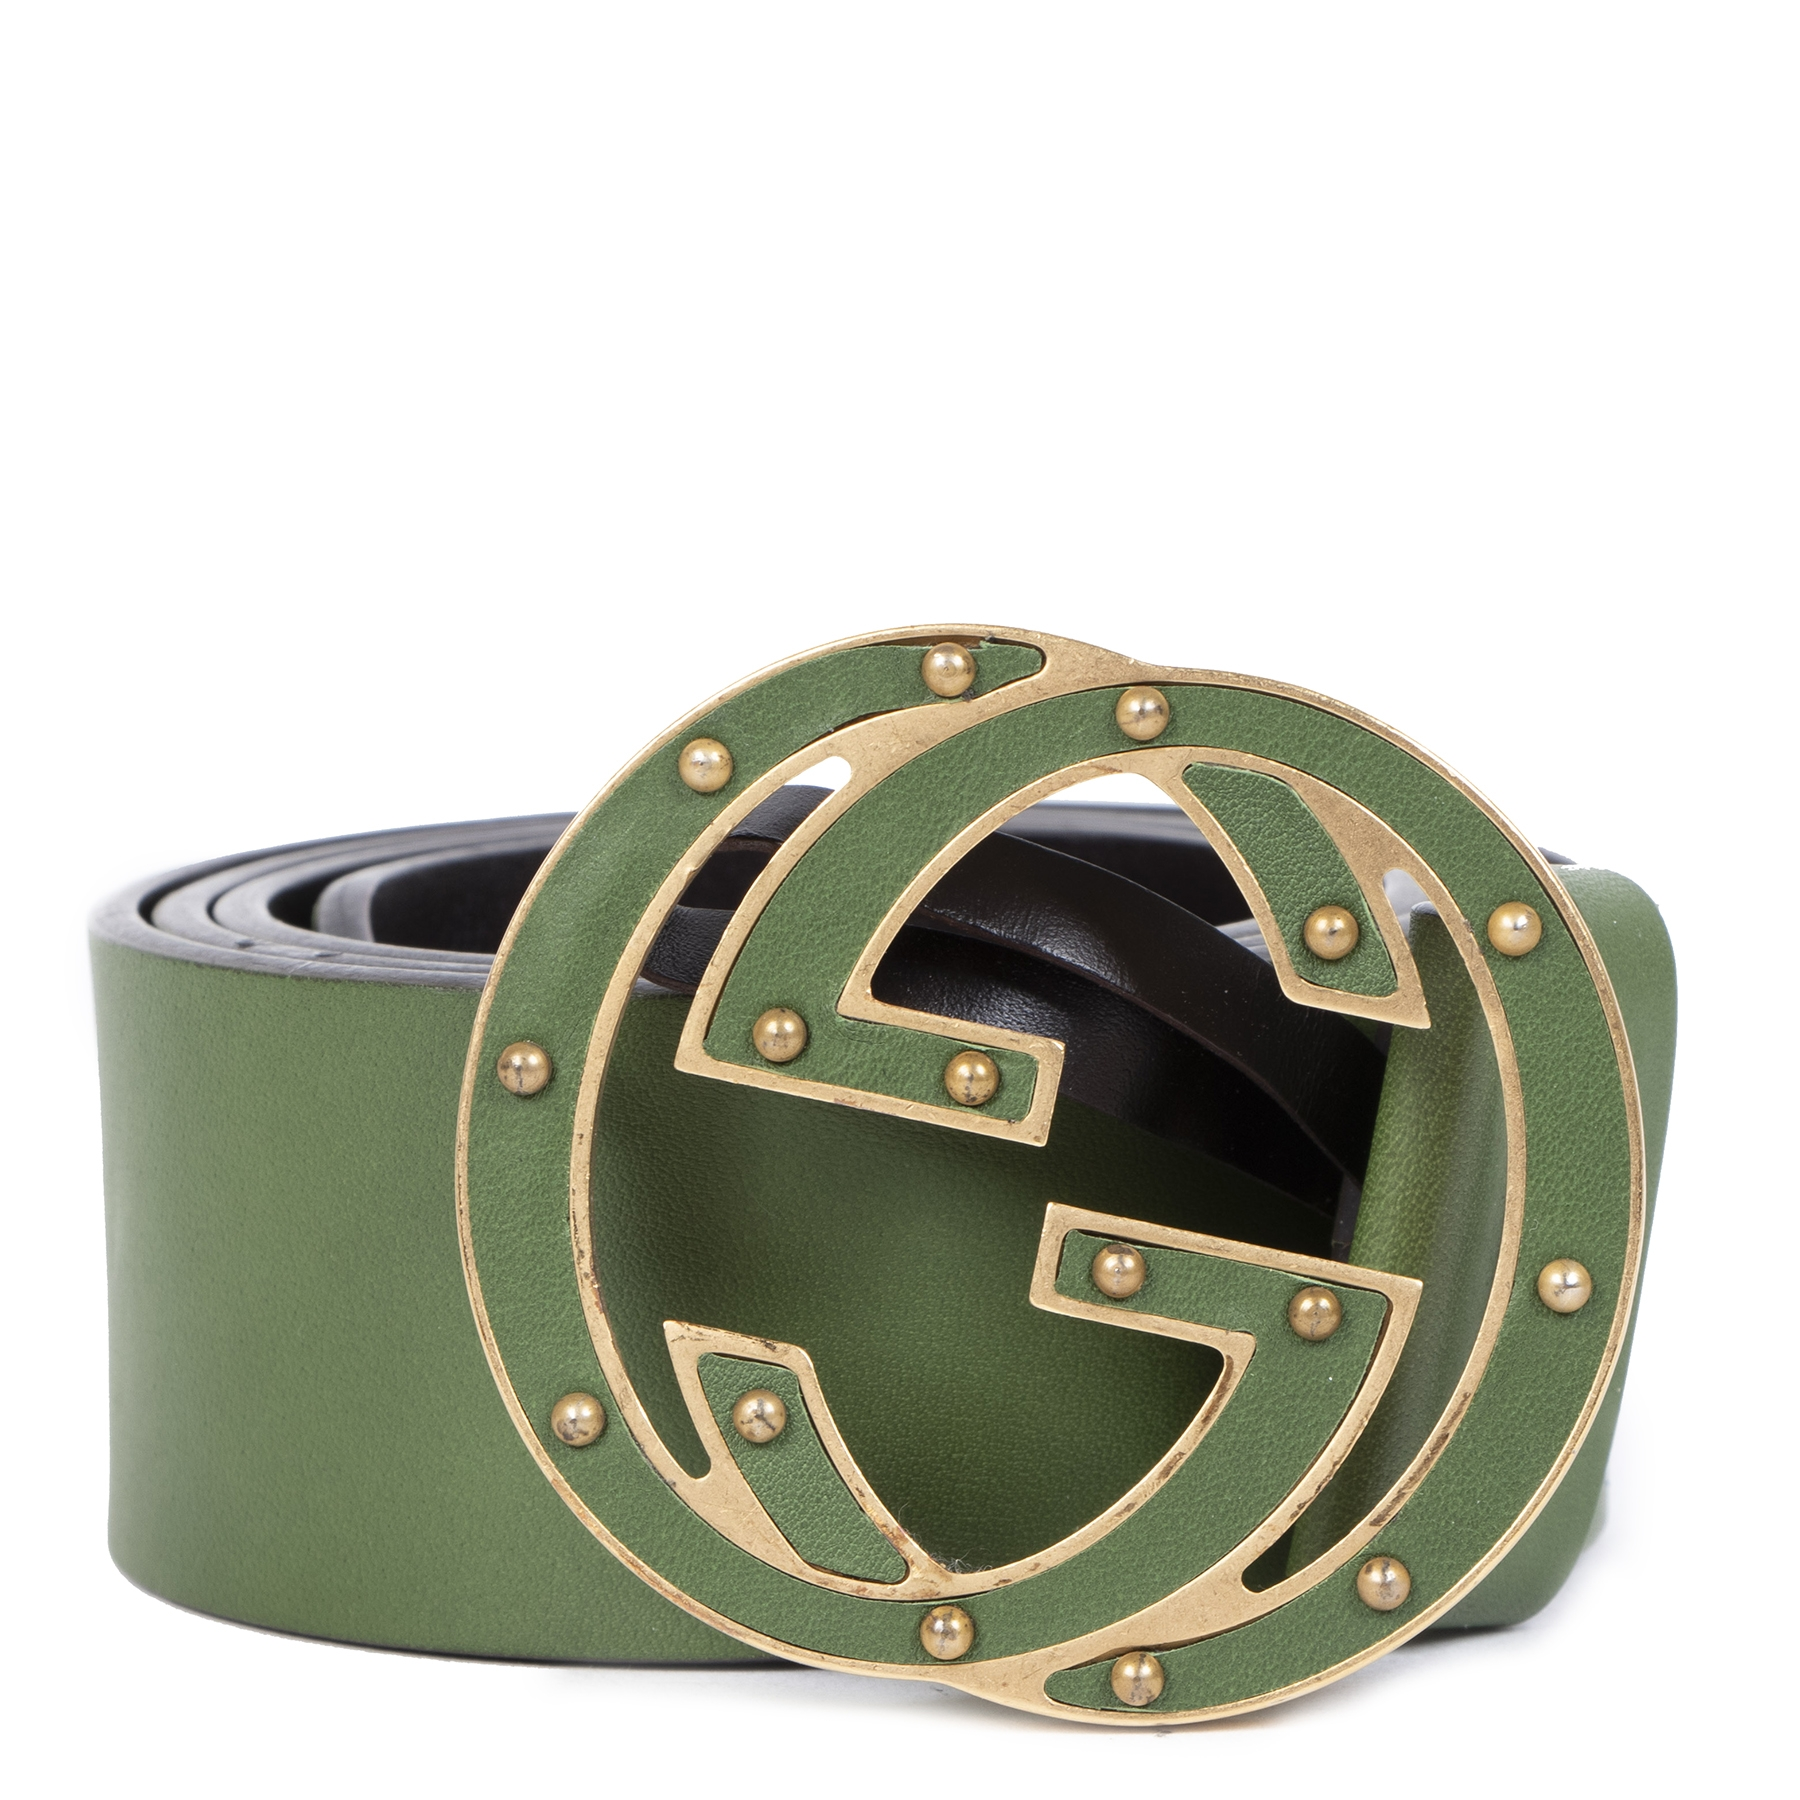 Authentic second-hand vintage Gucci GG Green Belt - Size 80 buy online webshop LabelLOV